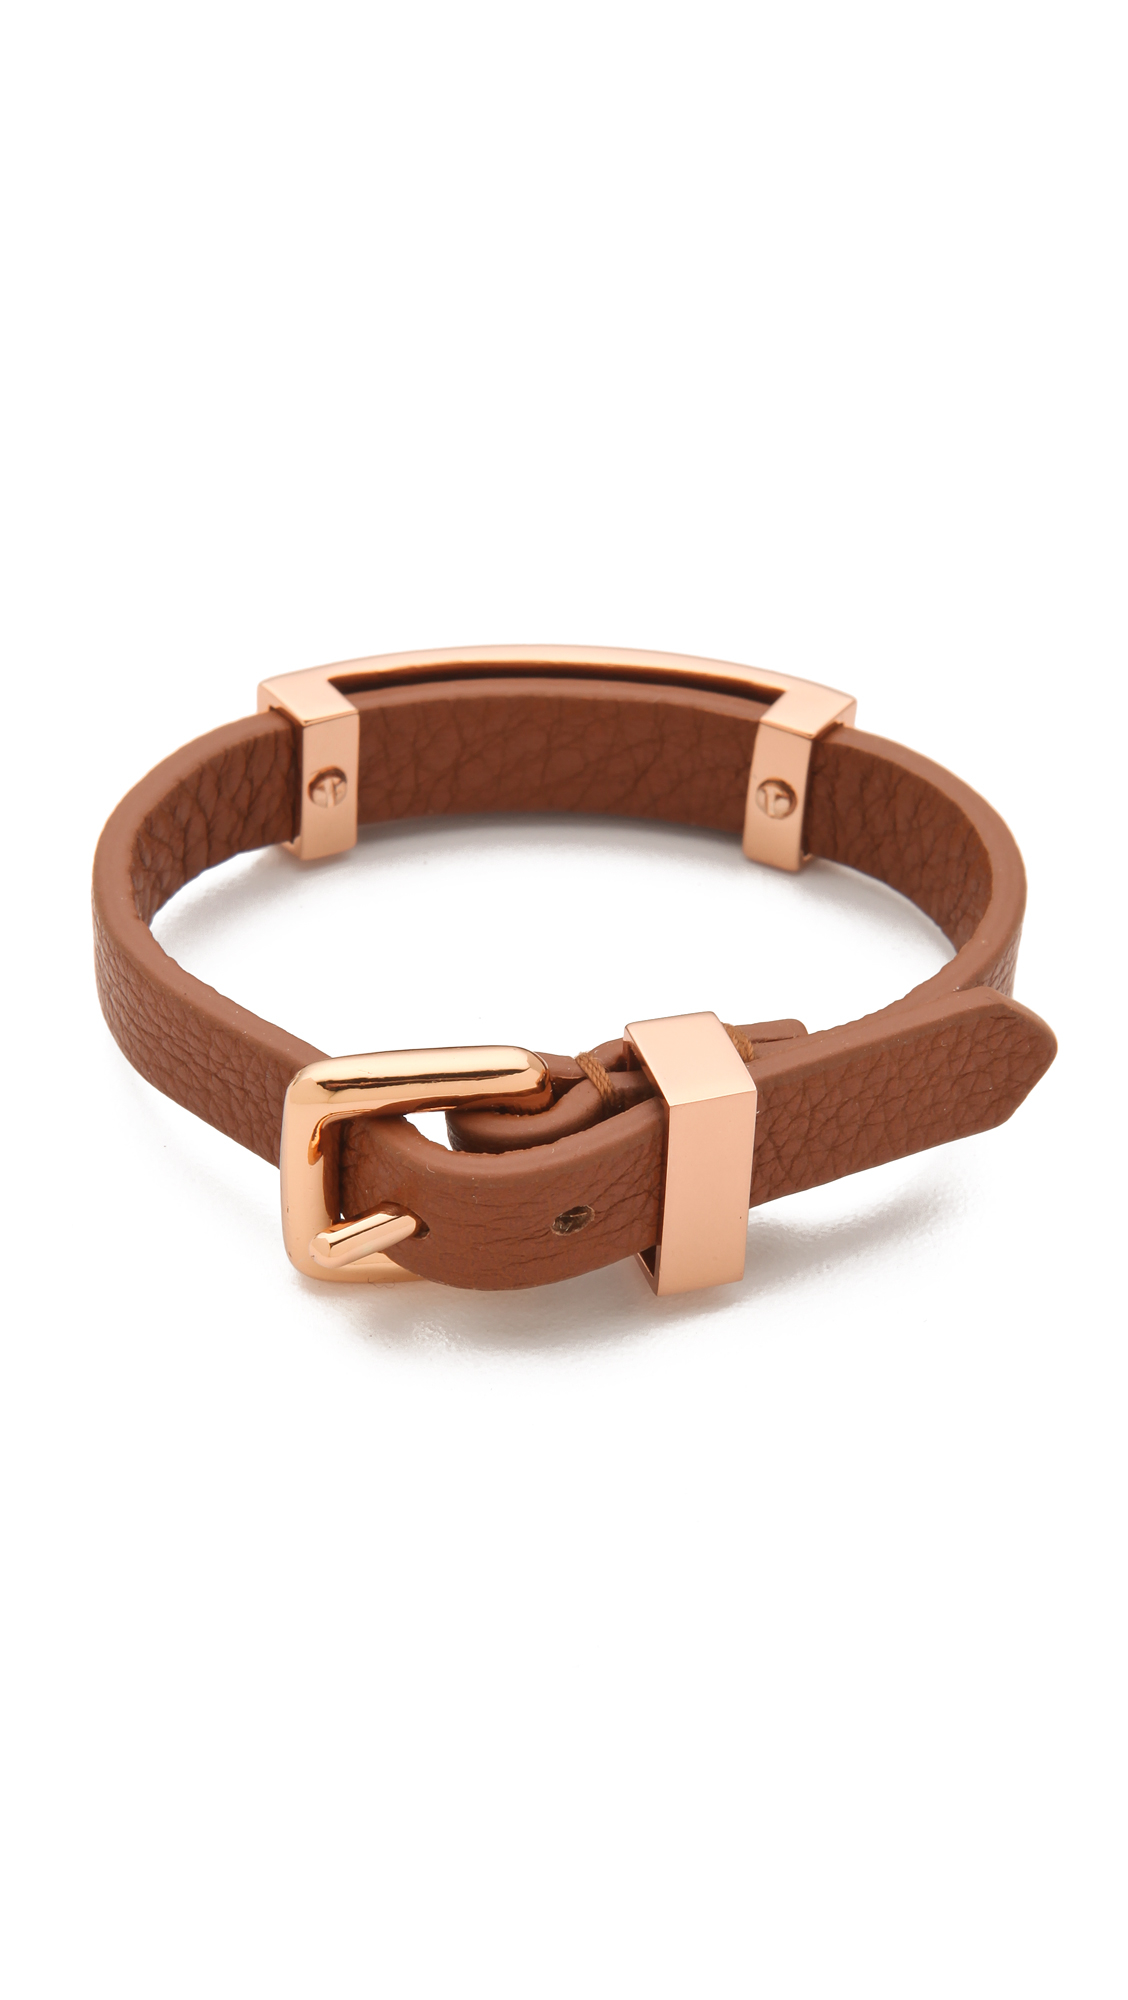 Fashion style Jacobs marc bracelet leather for woman